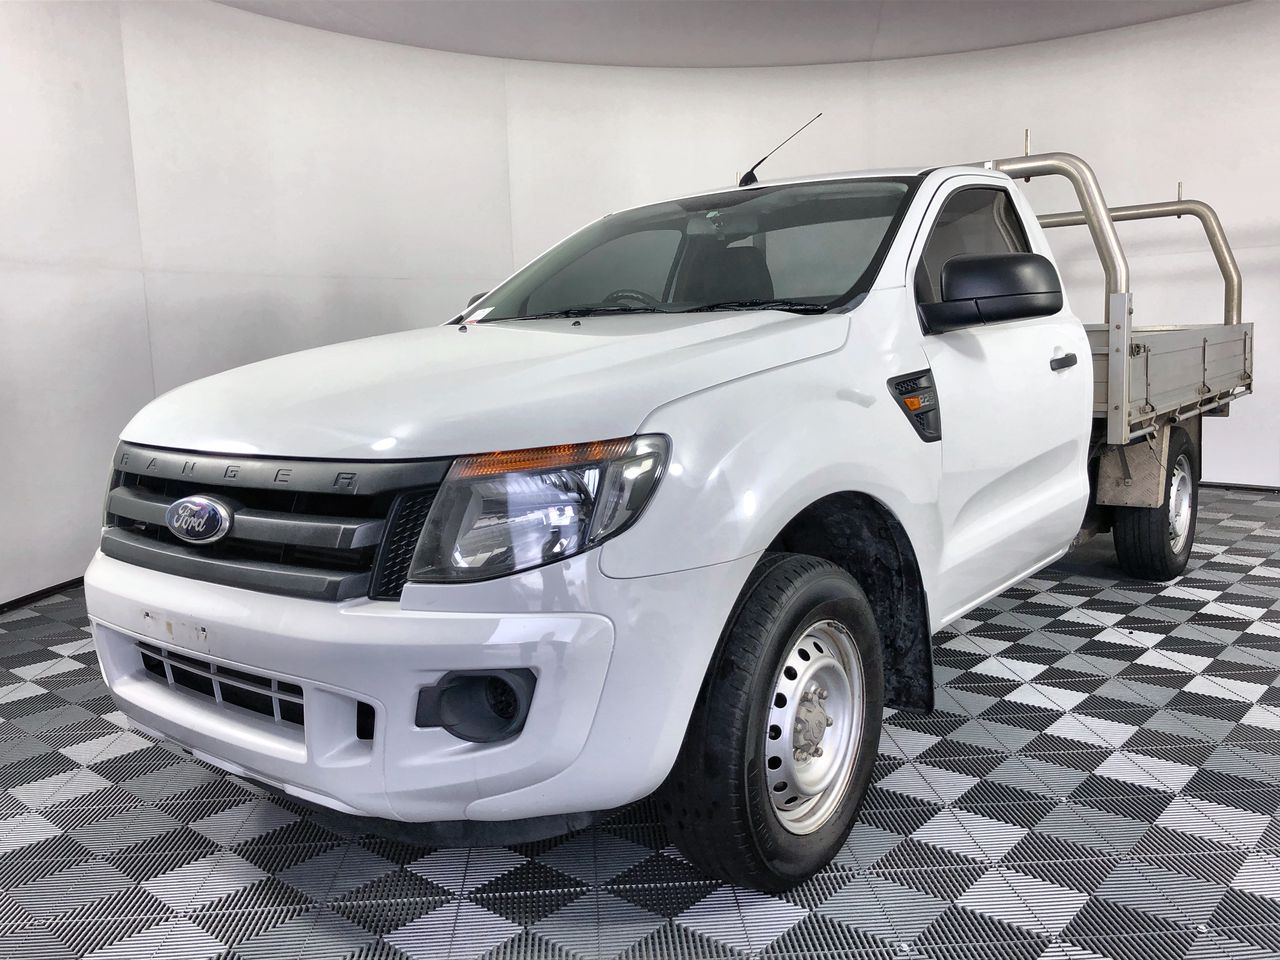 Ford Ranger XL 2.2 (4x2) PX Turbo Diesel Manual Cab Chassis